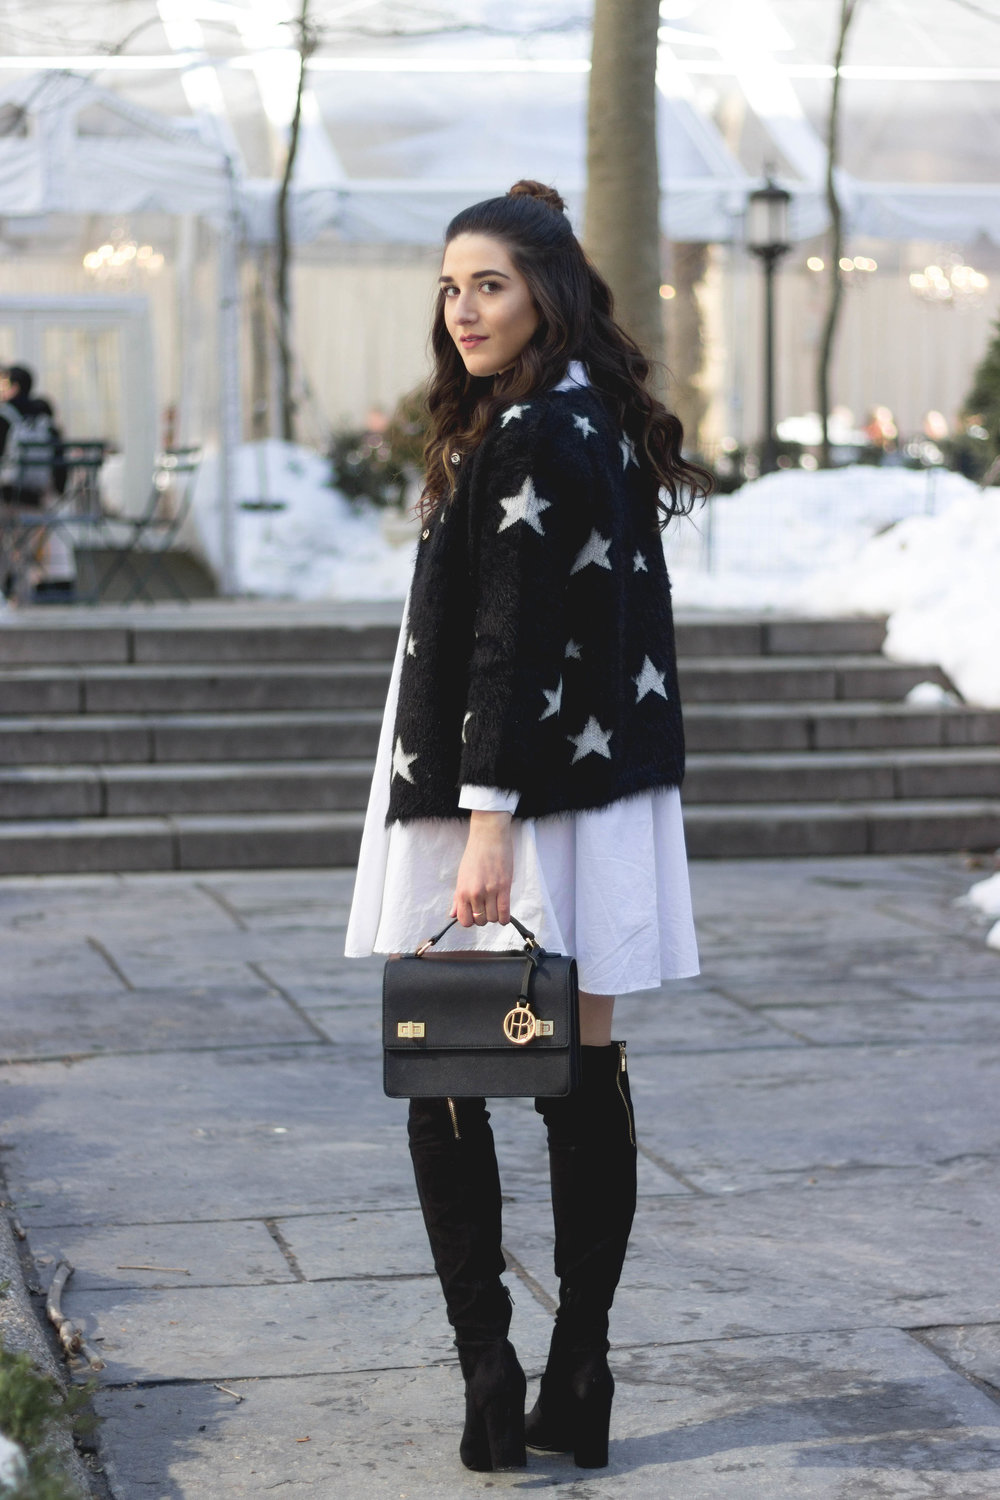 Trescool Star Jacket How NYC Changed My Style Esther Santer Fashion Blog NYC Street Style Blogger Outfit OOTD Trendy Henri Bendel Black Bag Over The Knee Boots Topknot Bun Women Shoes Girl Zara White Button Down Shirt Dress Purse Wearing Shopping Shop.jpg